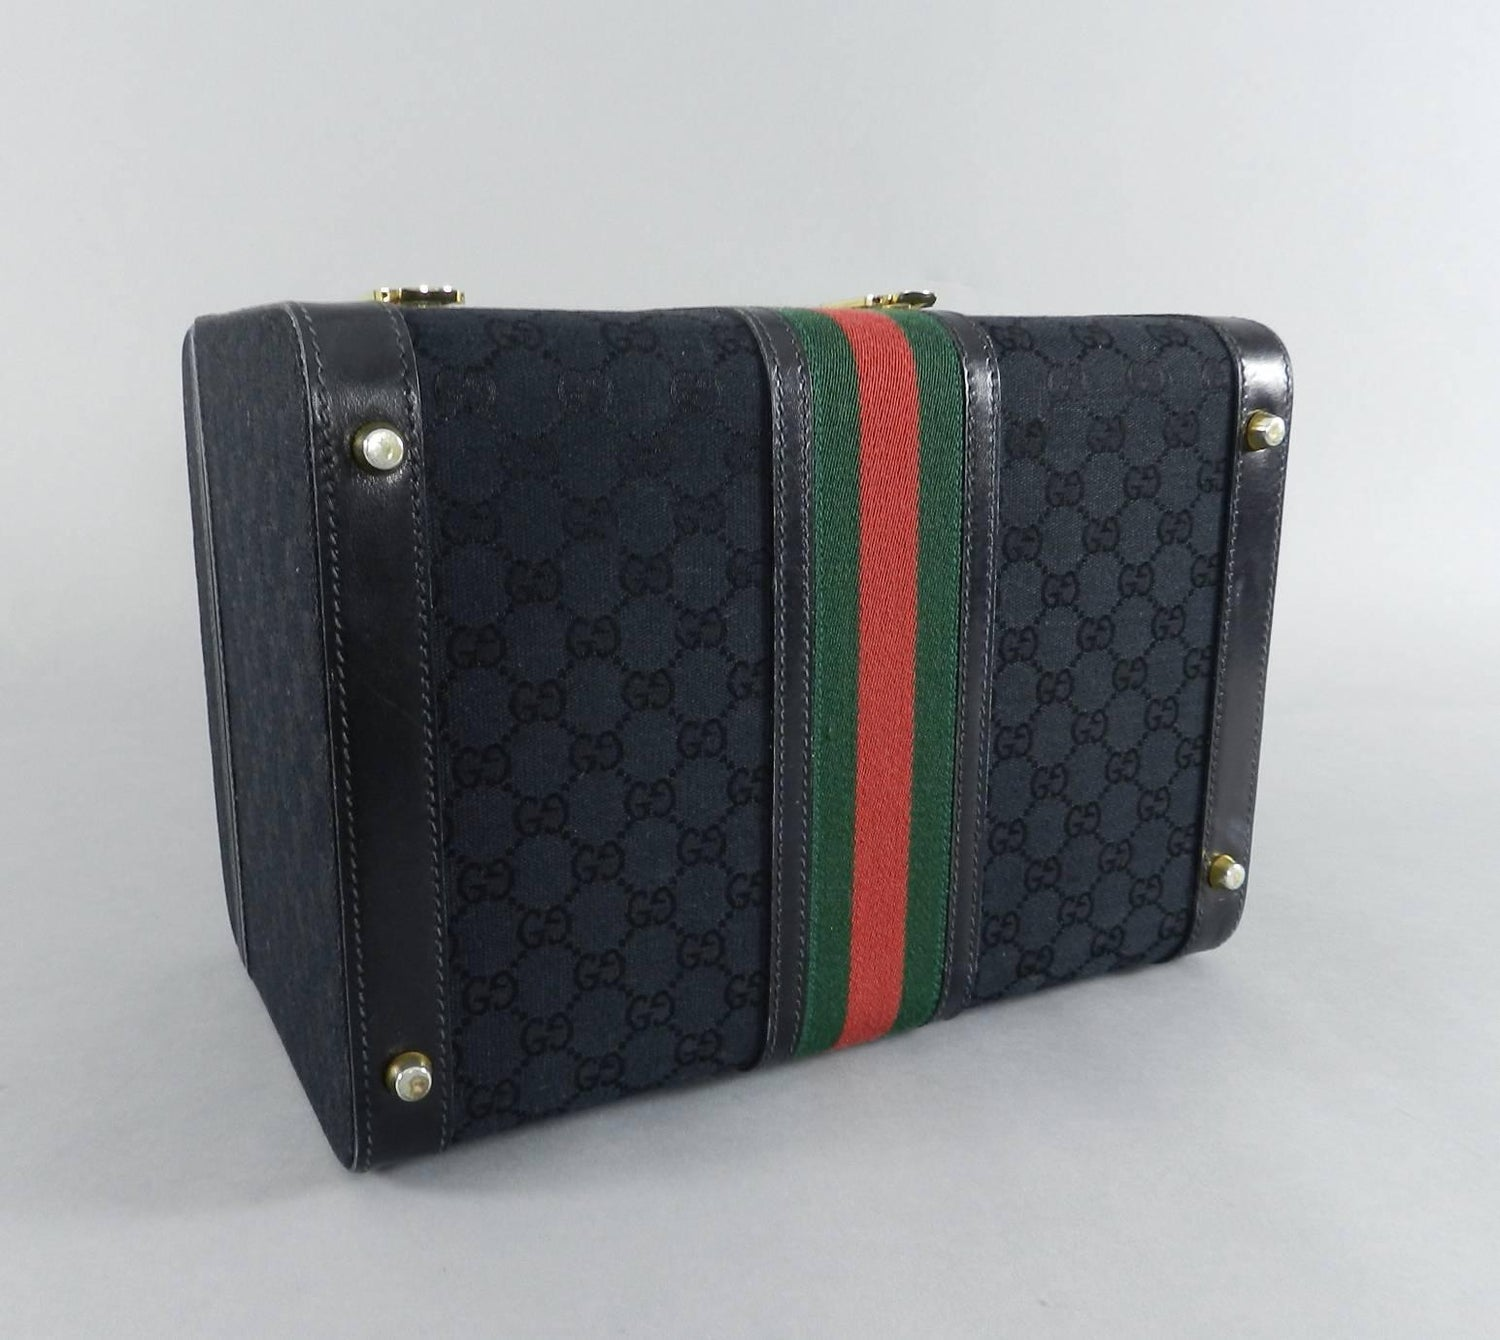 22350f5f08e Gucci Vintage 1970 s Black Monogram Train Case Bag - Travel Luggage Trunk  at 1stdibs